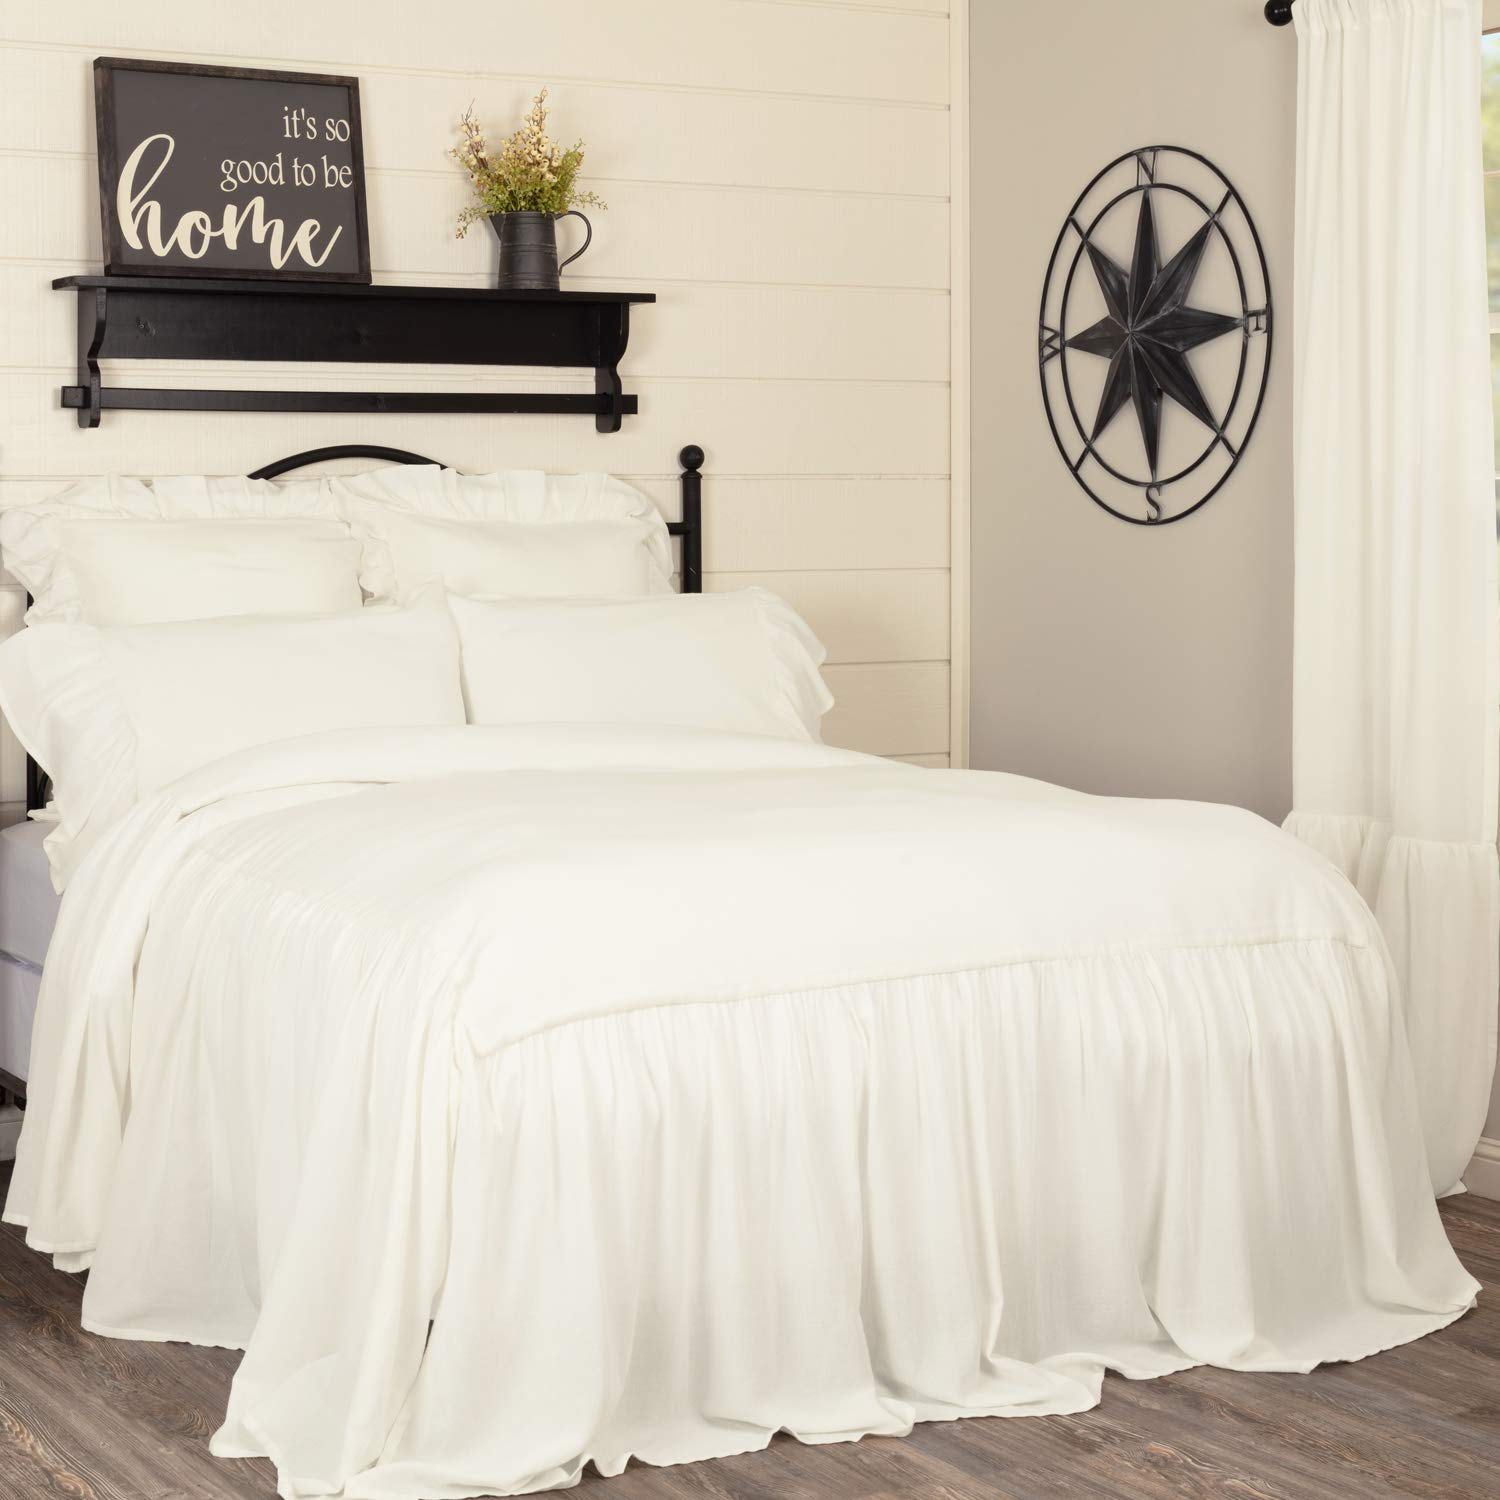 Piper Classics Annabelle Ruffled Bedspread, King Size, Skirted on 3 Sides, Antique Soft White, Lightweight, Farmhouse Style Bedding